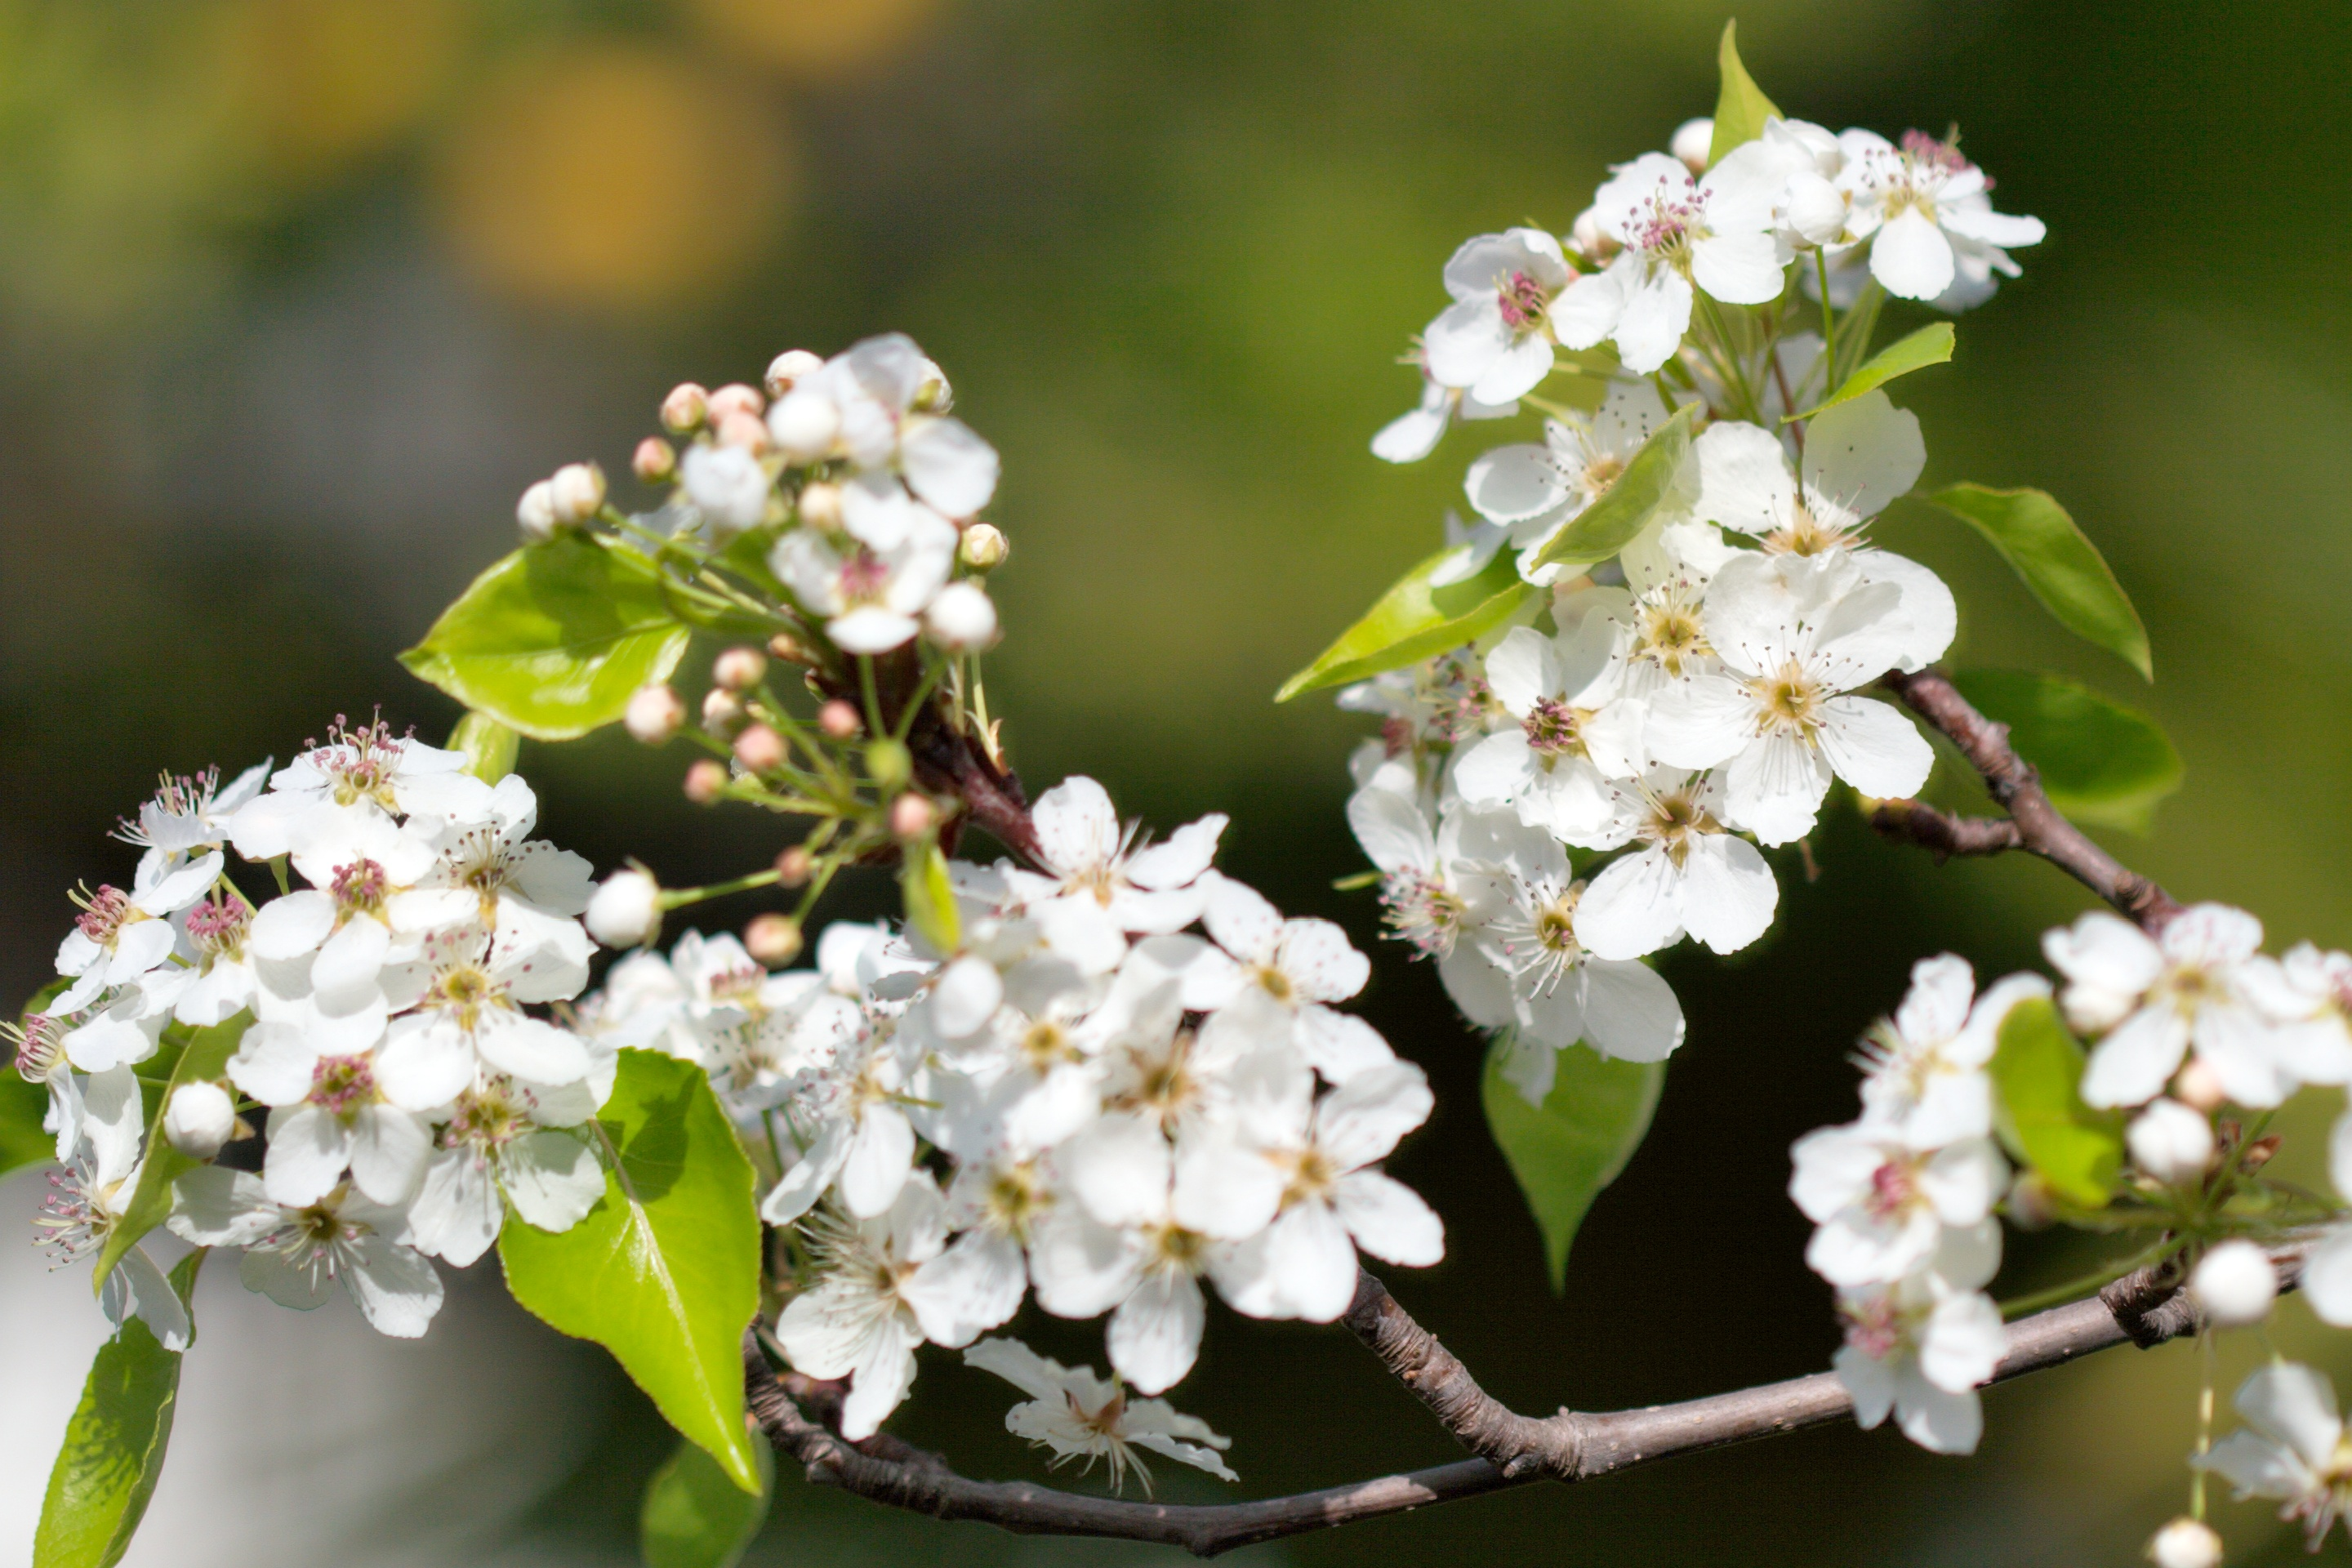 Flowering Pear Tree Smell Flowers Ideas What Has White In The Spring